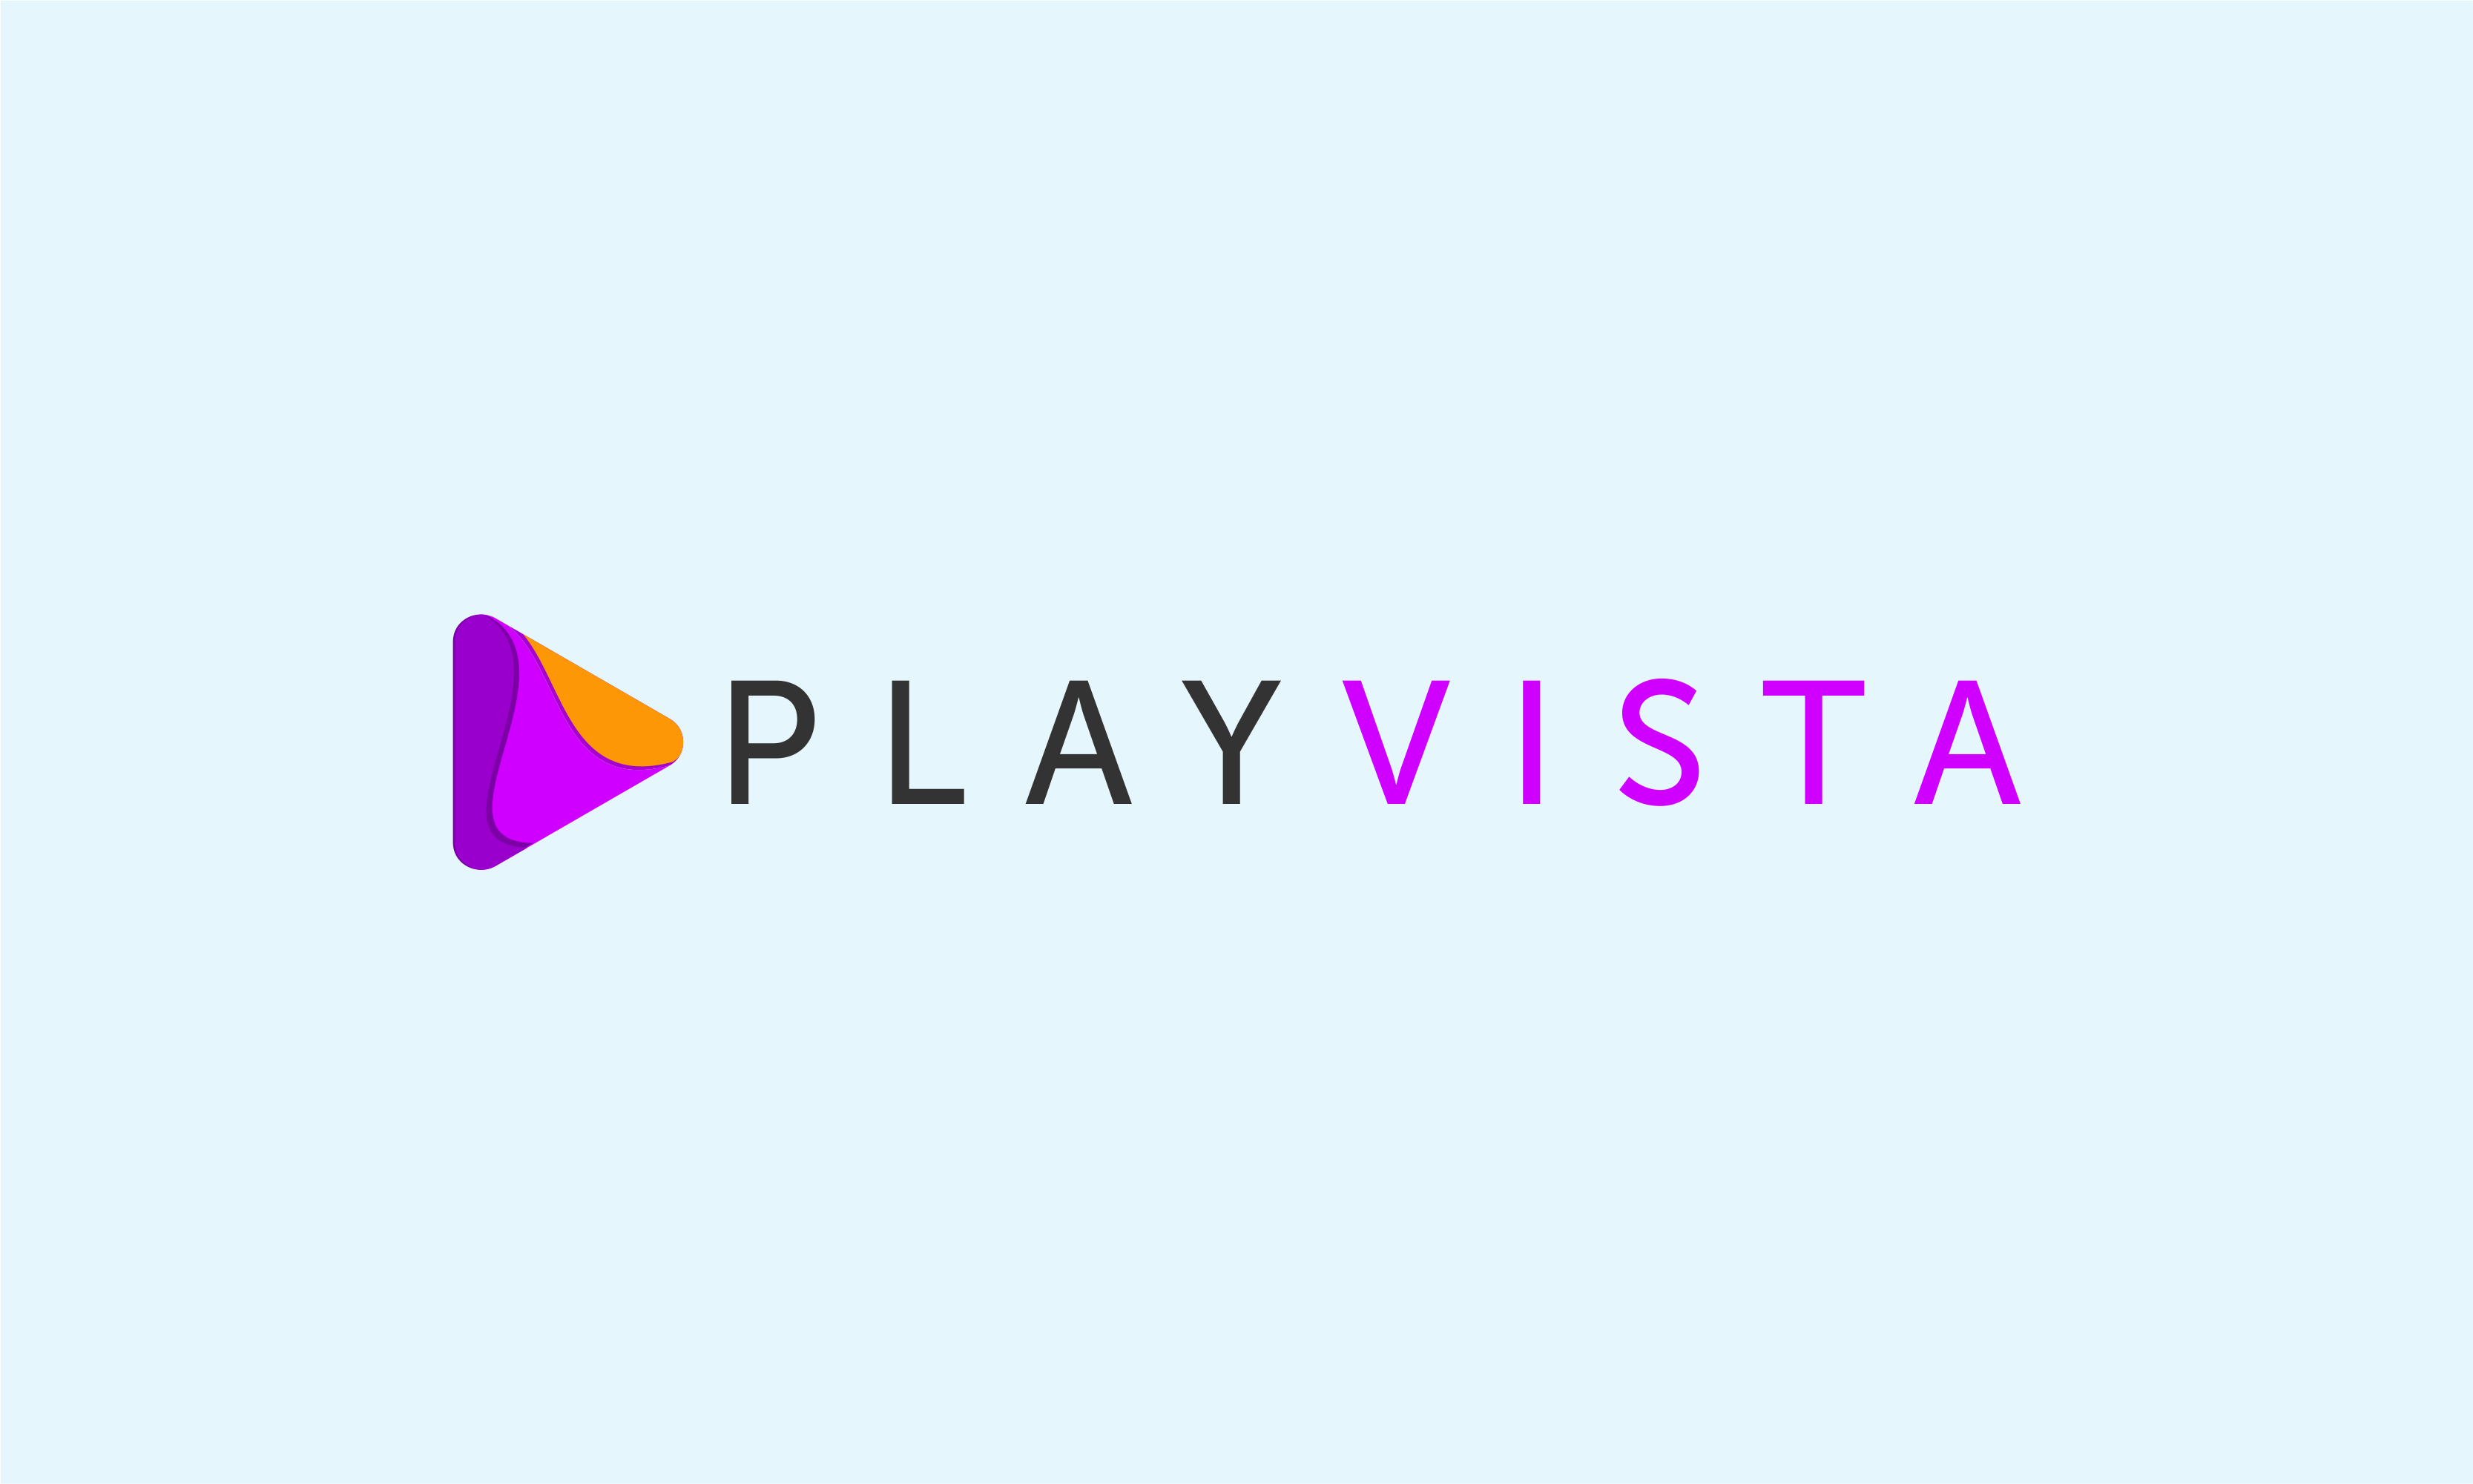 PlayVista logo